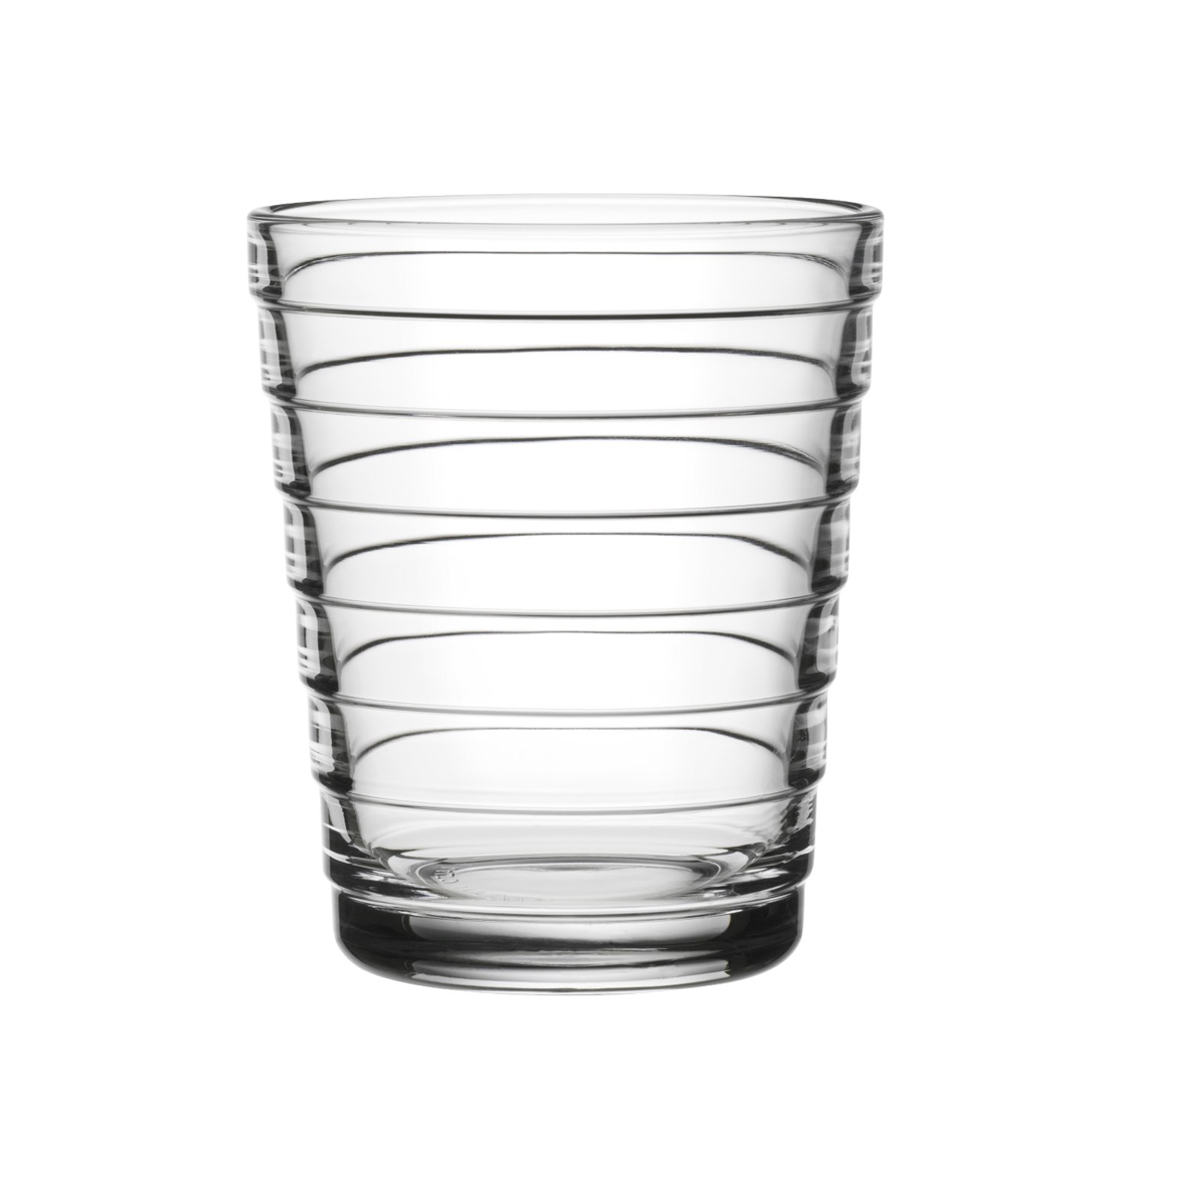 Aino_Aalto_glass_22cl_clear